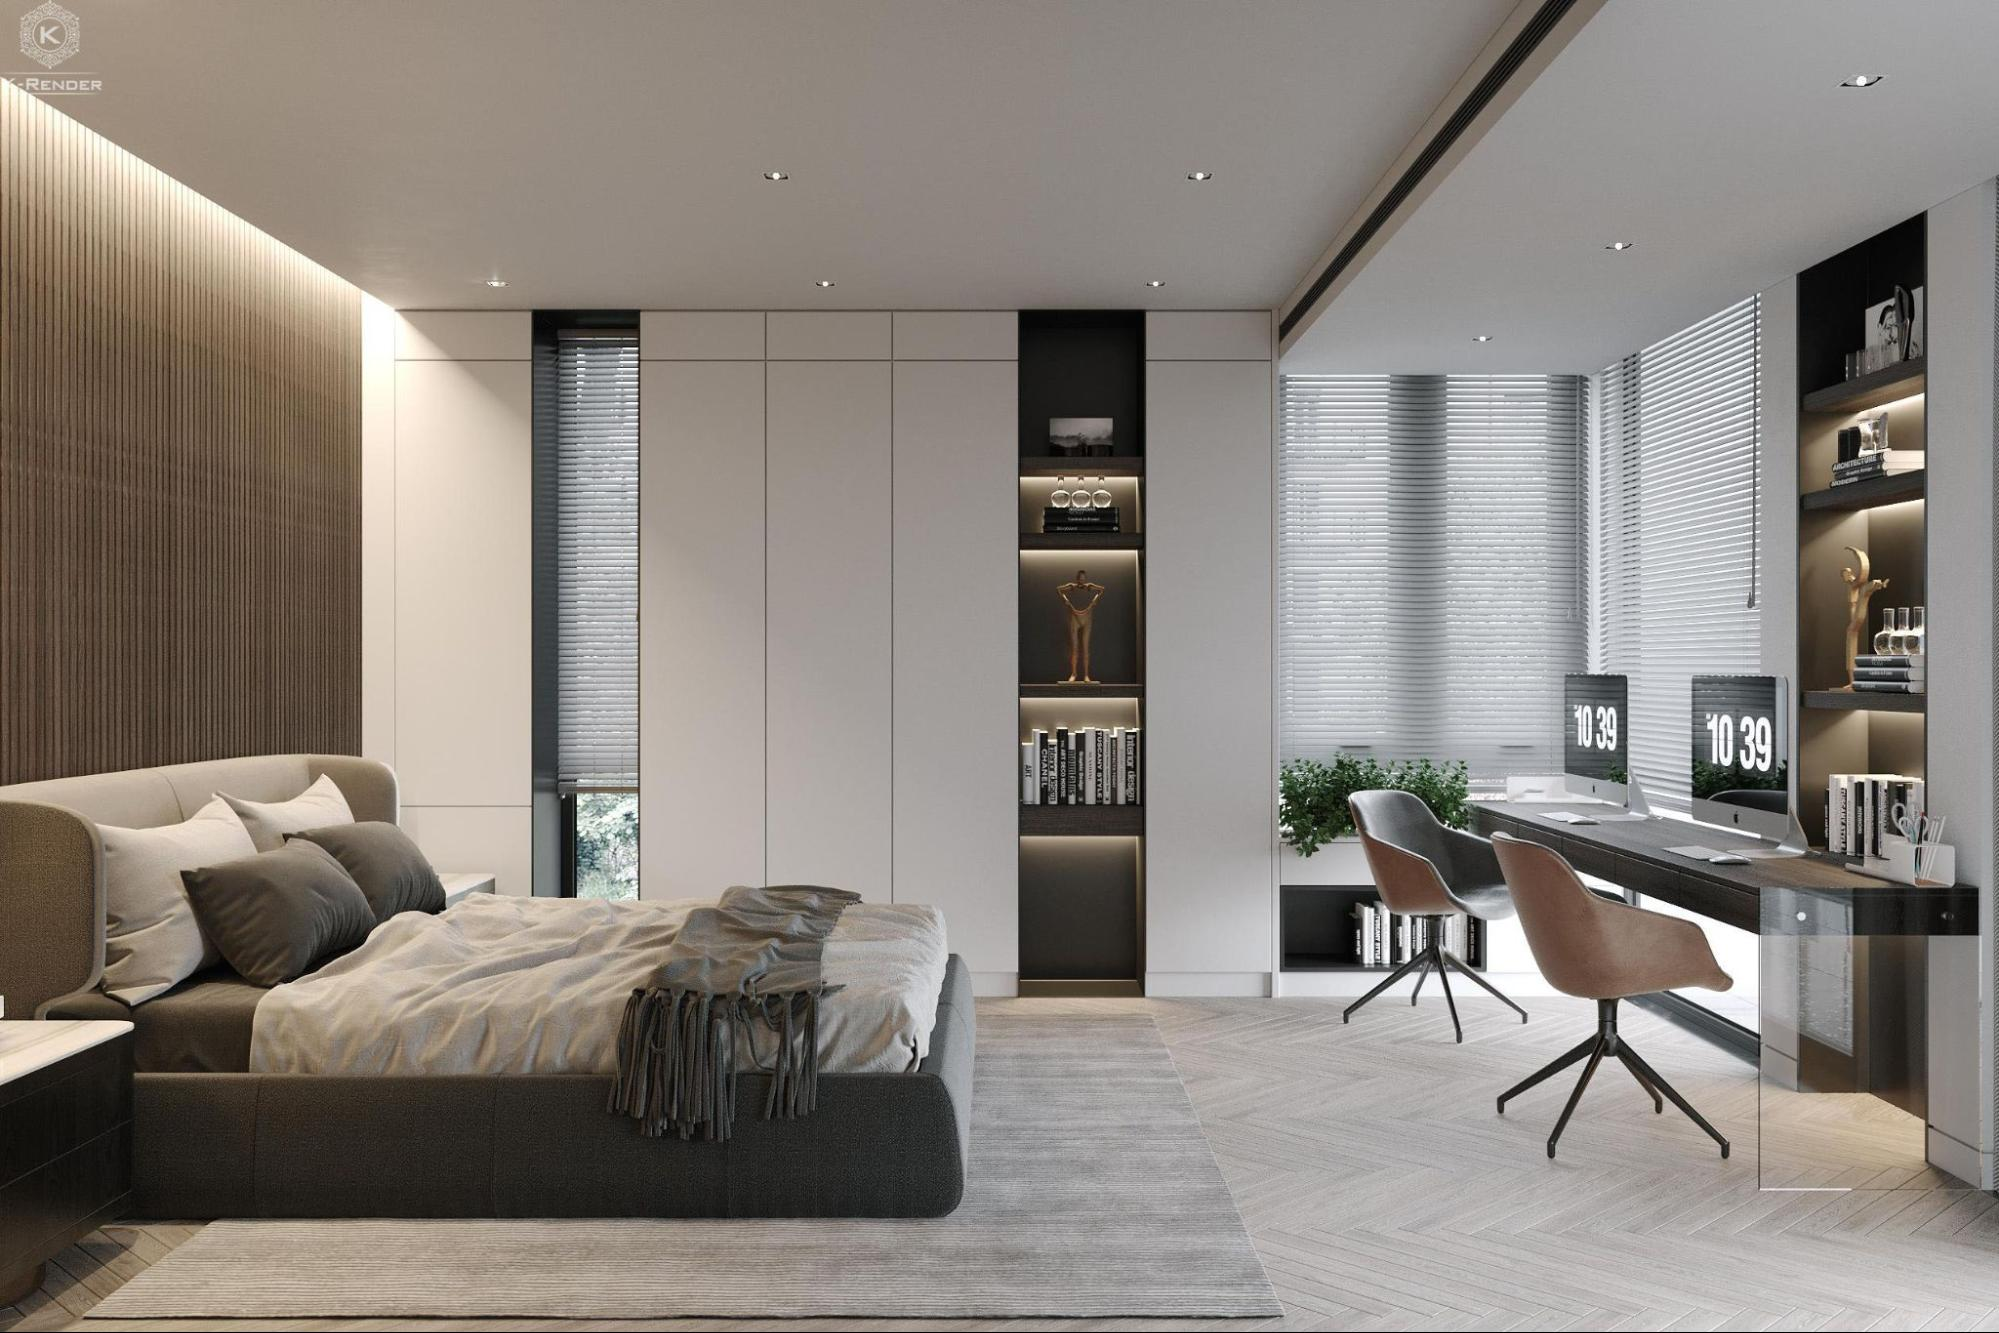 Interior-3D-rendering-one-of-the-types-of-architectural-visualization-services